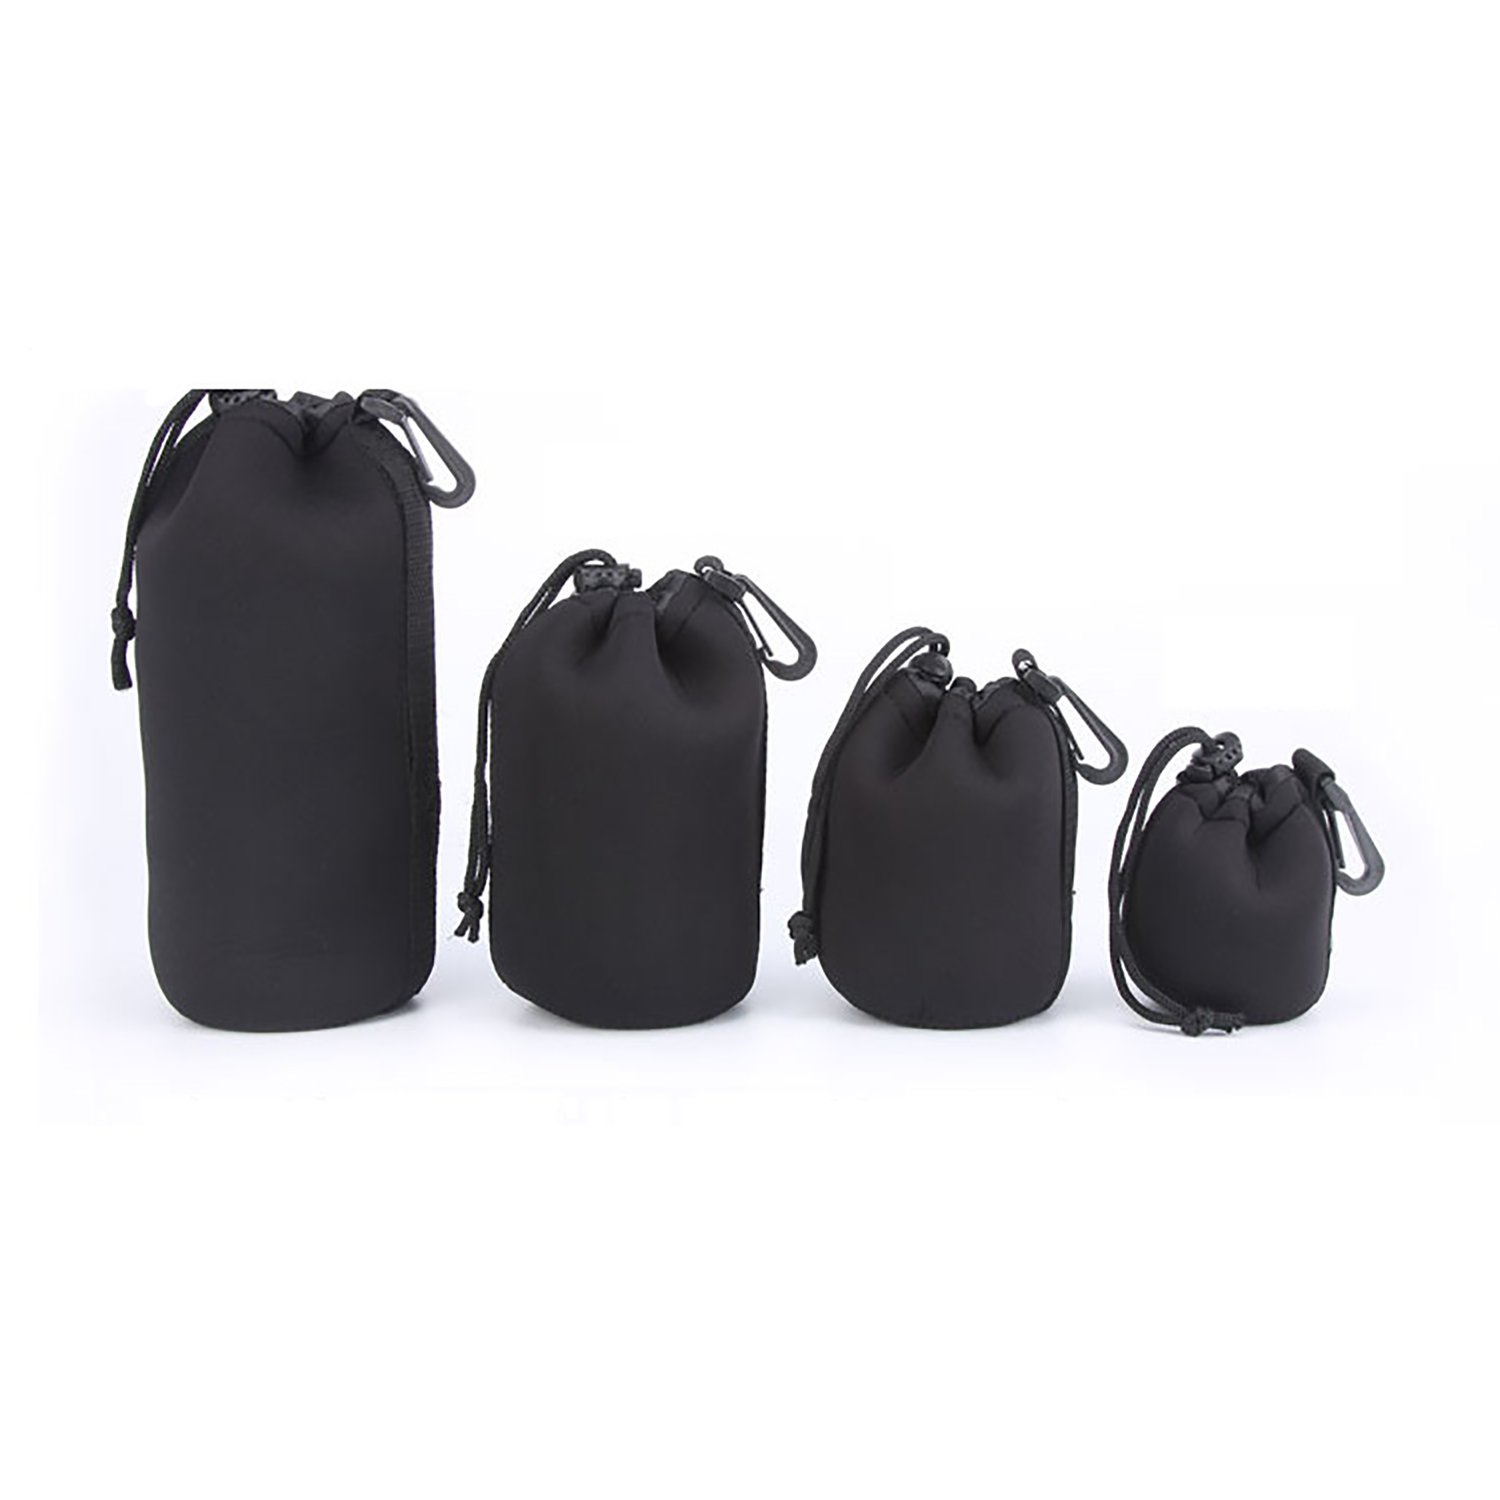 Set 4 Pack (S+M+L+XL) Lens Case for Camera DSLR Lens Soft Pouch Protector Case Cover Sleeve Bag Set The Best Kingdom